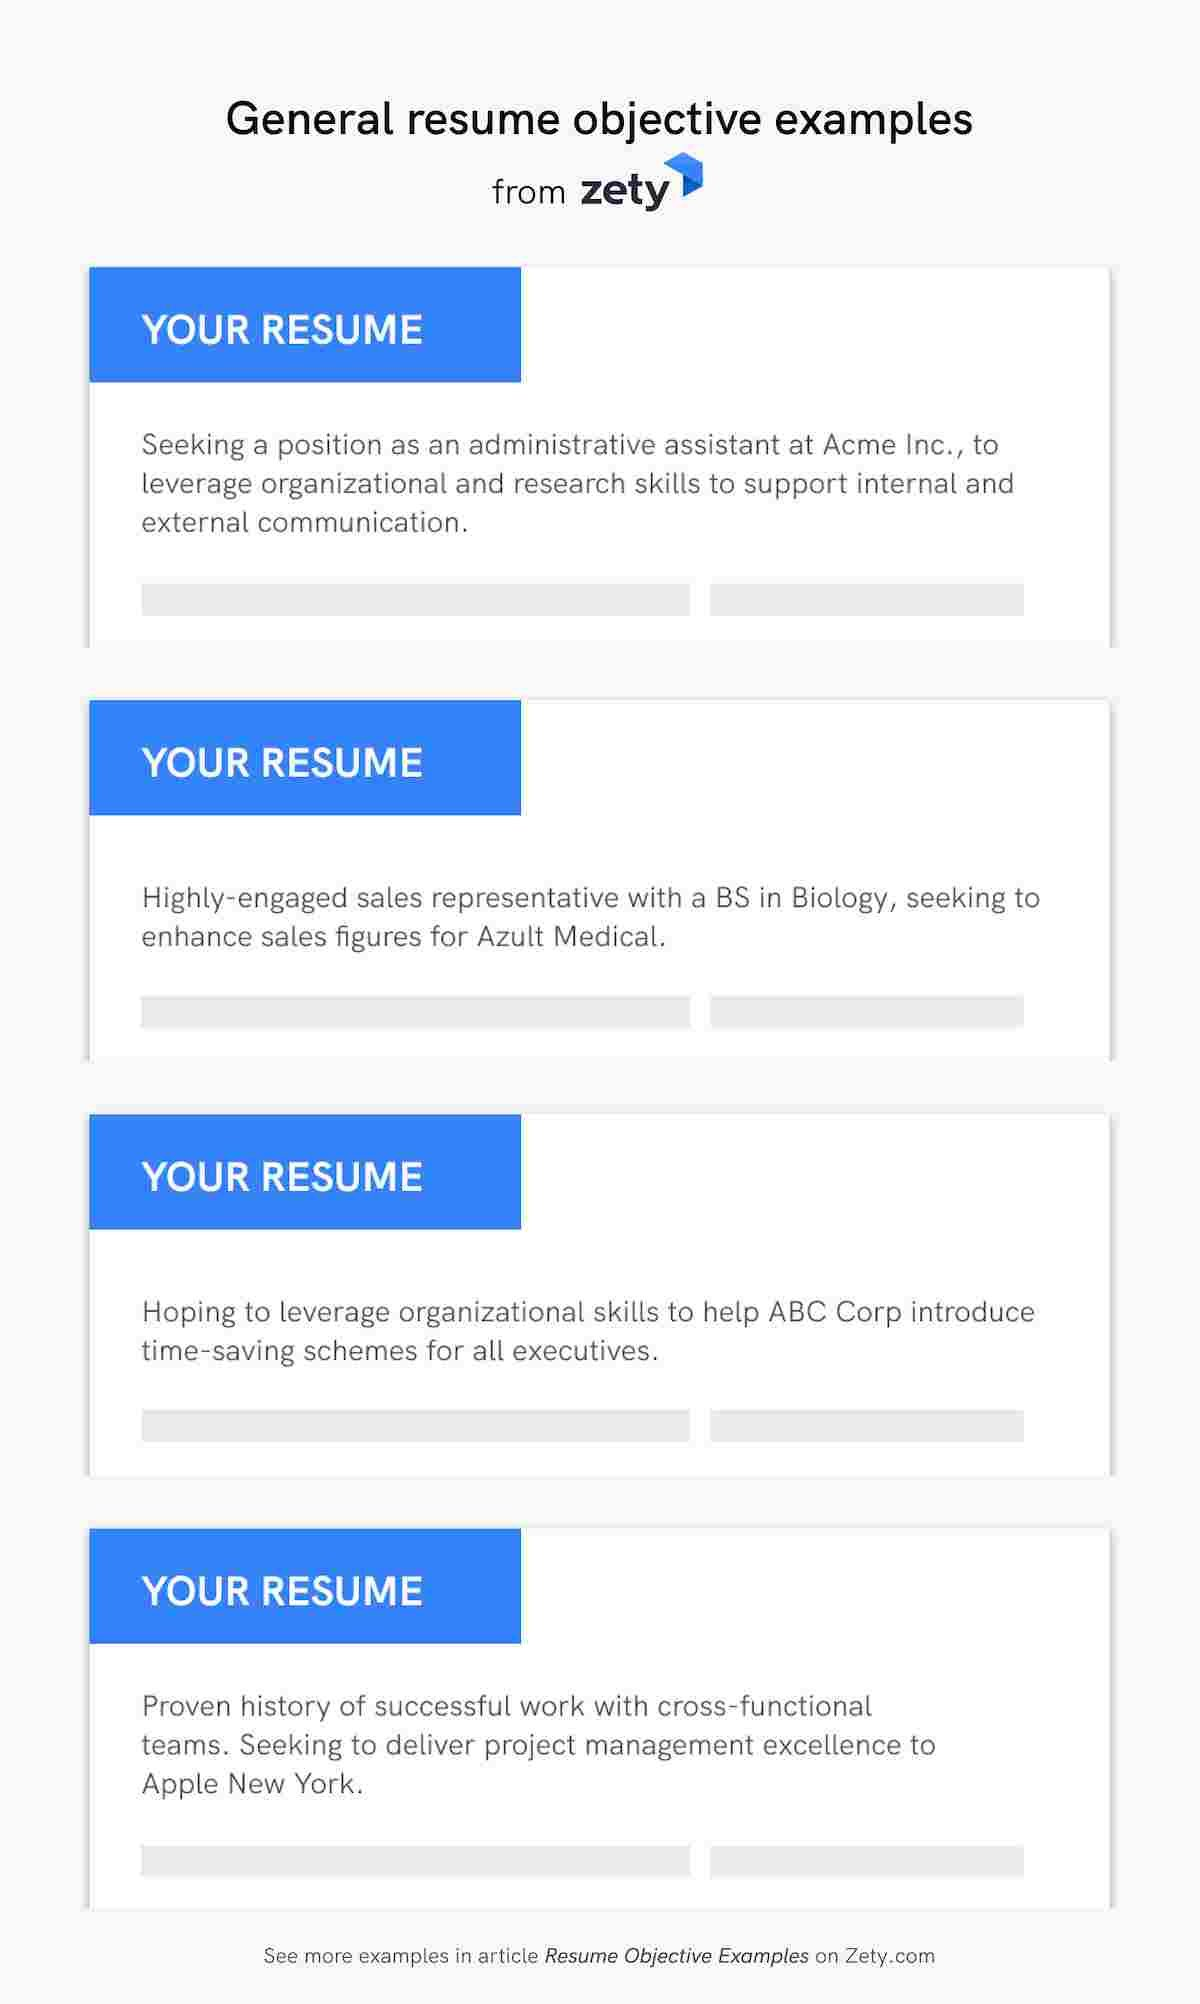 resume objective examples career objectives for all jobs summary or general human rights Resume Summary Or Objective Resume